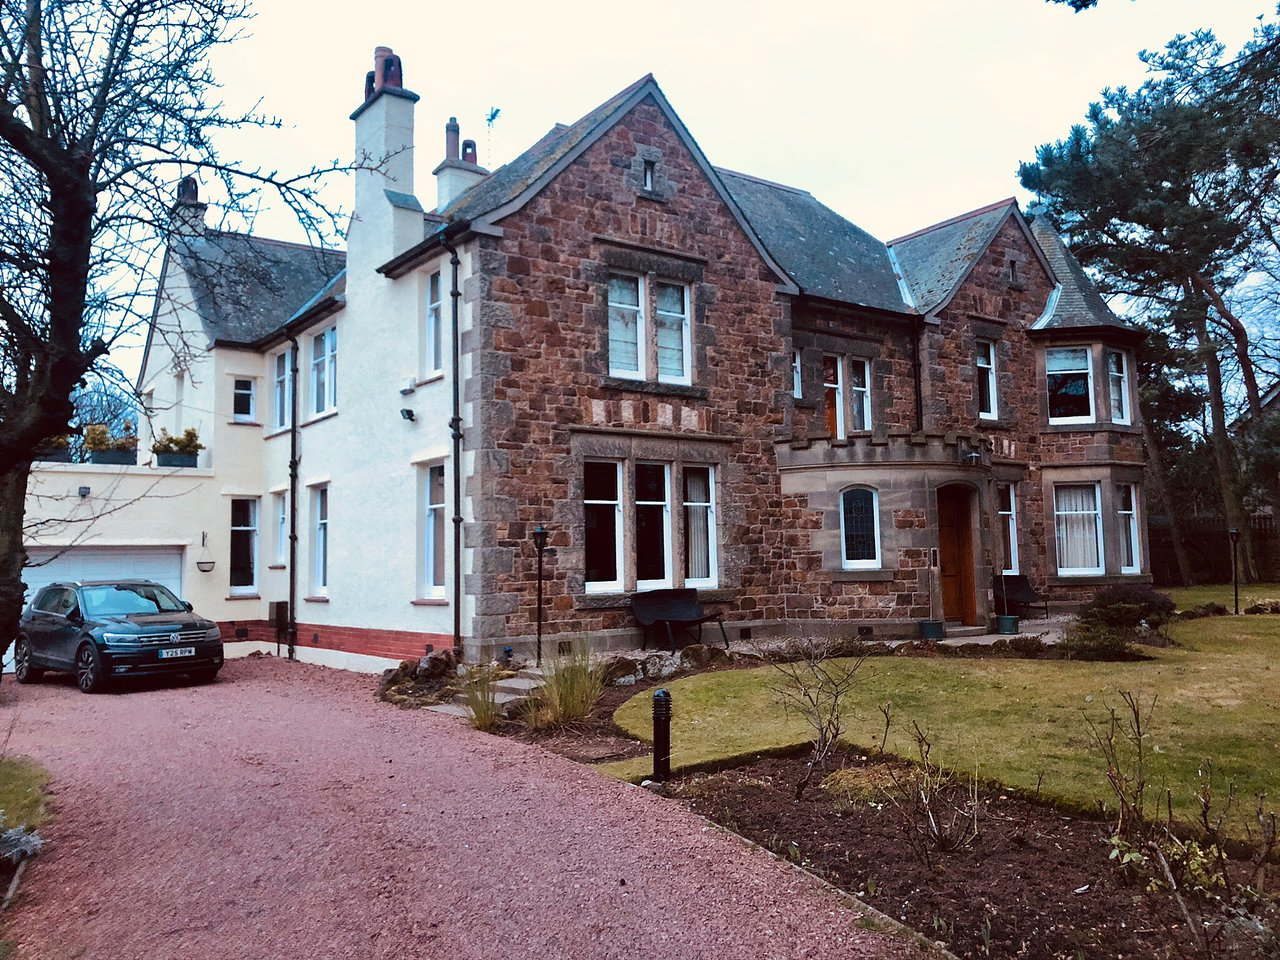 Cucina Amore North Berwick Tripadvisor Meadowside Residence Updated 2019 Prices B B Reviews And